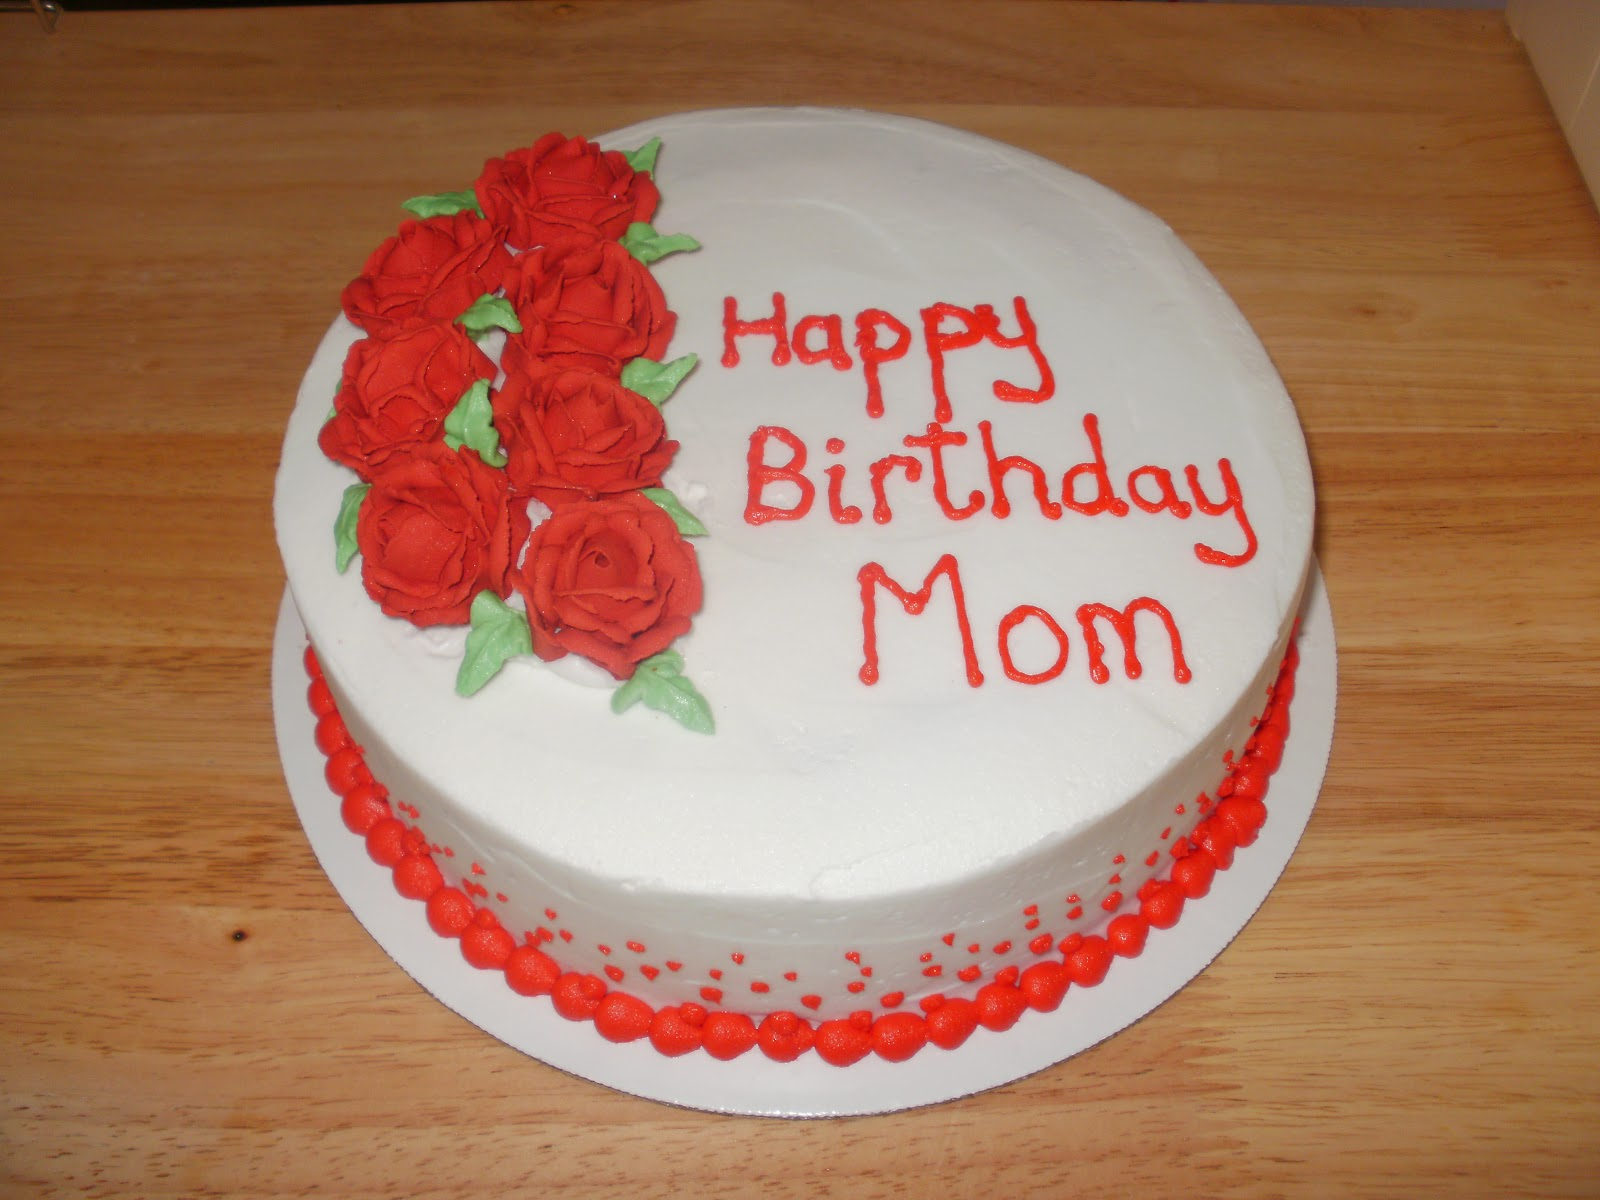 Best Cake Designs For Mother : The Many Adventures of a Sunflour Cake Mom: Happy Birthday ...